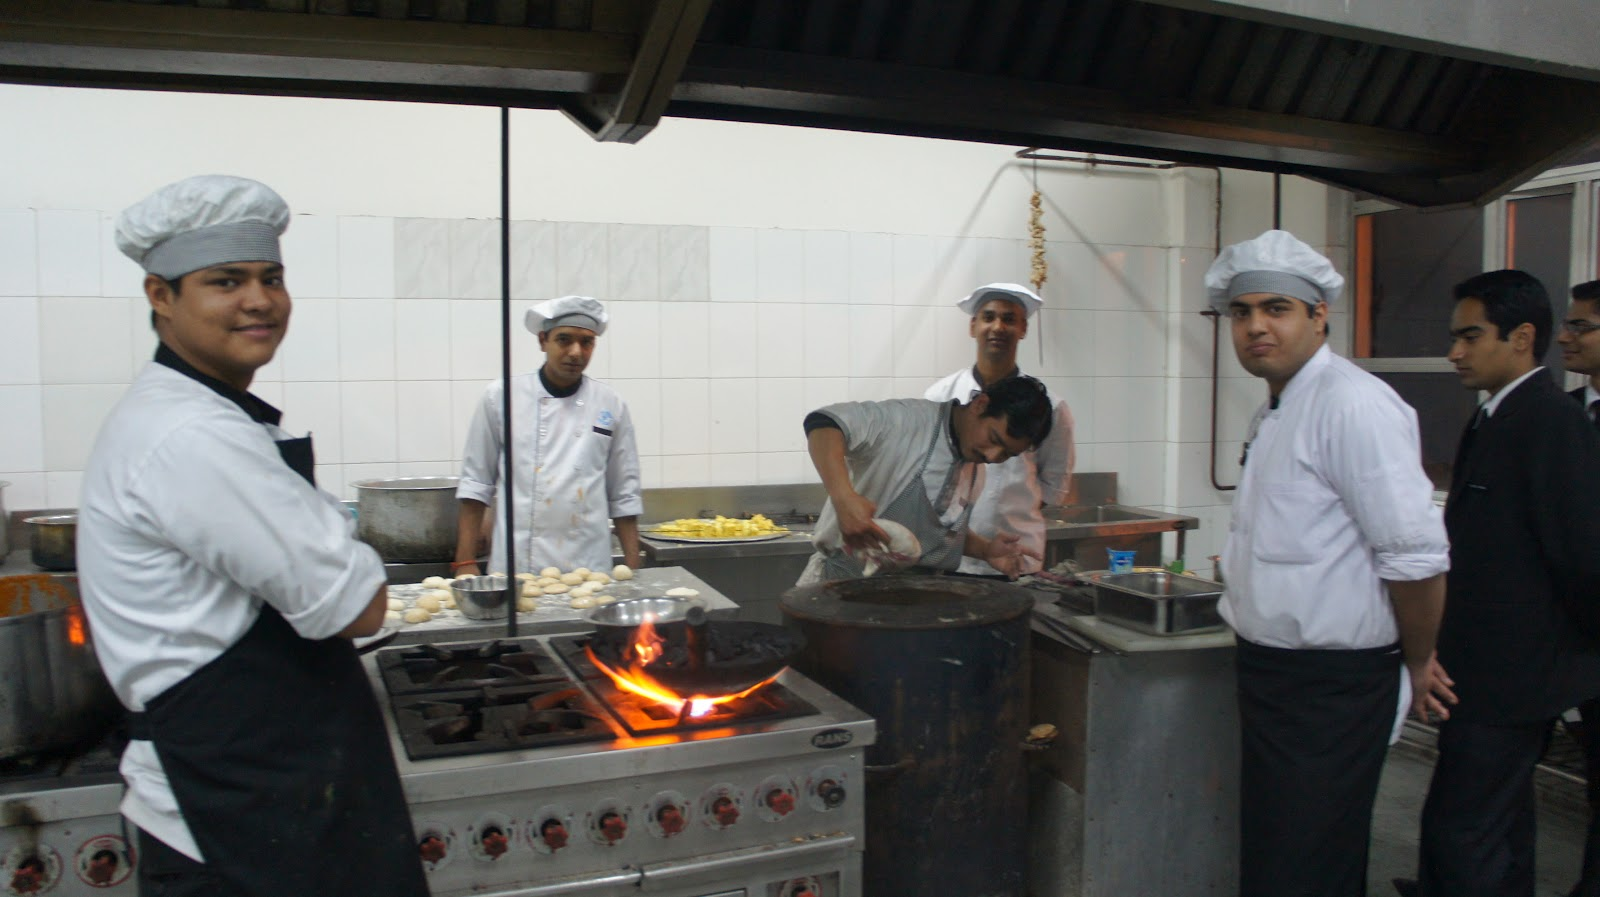 Institute Of Hotel Management Catering Technology I Was Even Invited Into The Kitchen To See How Tandoori Chicken And Naan Bread Prepared